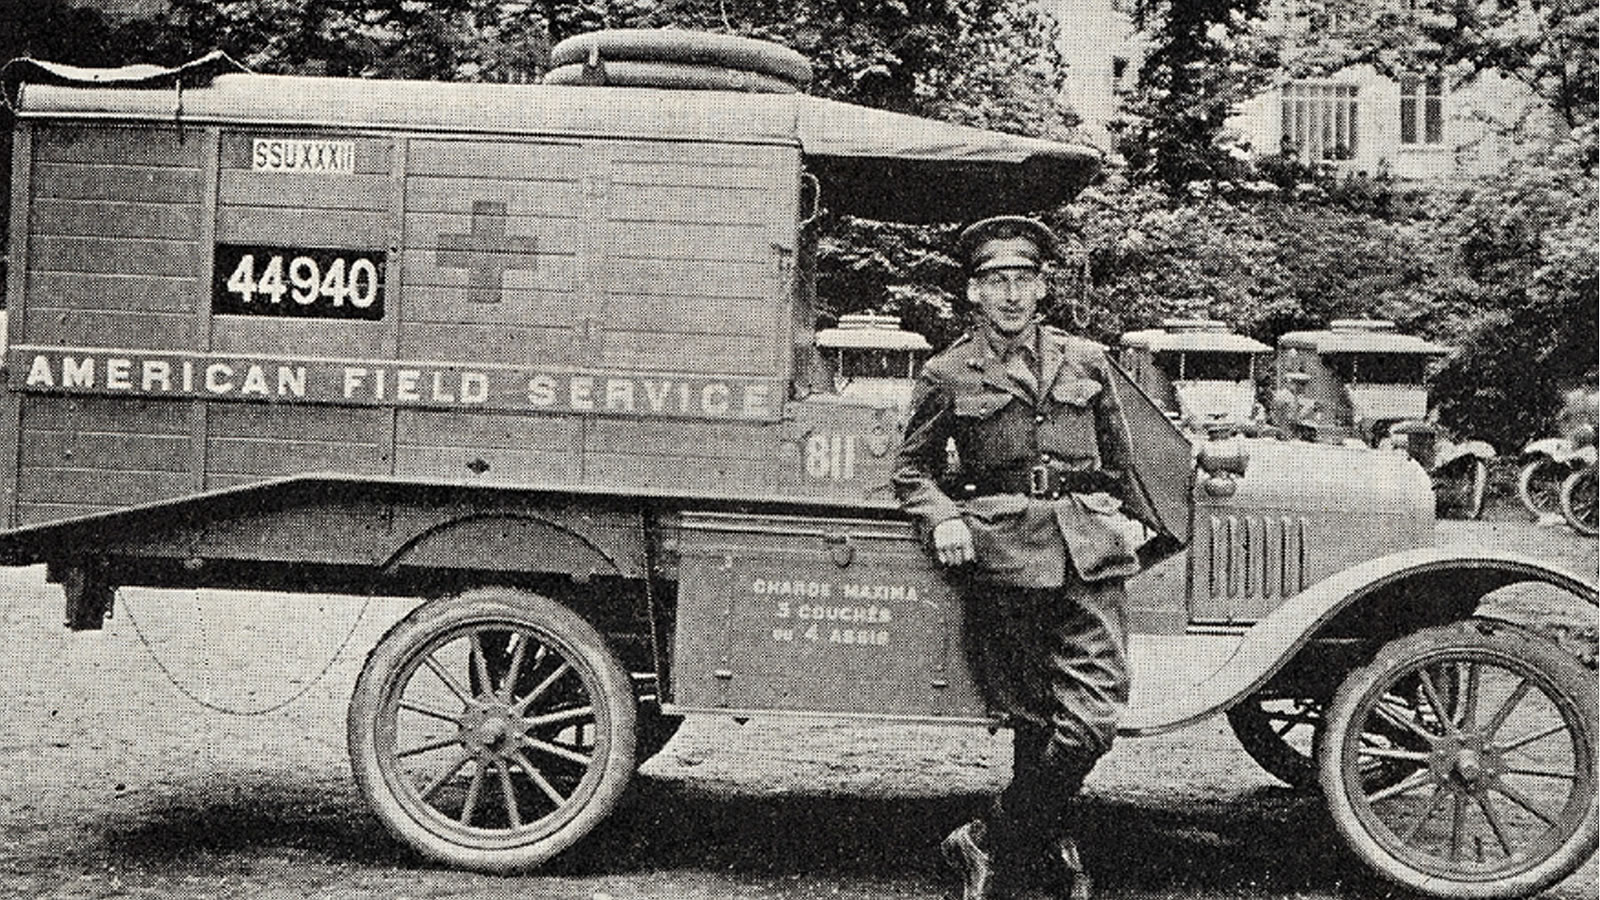 World war one ambulance clipart picture free library Americans in French Helmets: The Enigma of the American Adrian picture free library